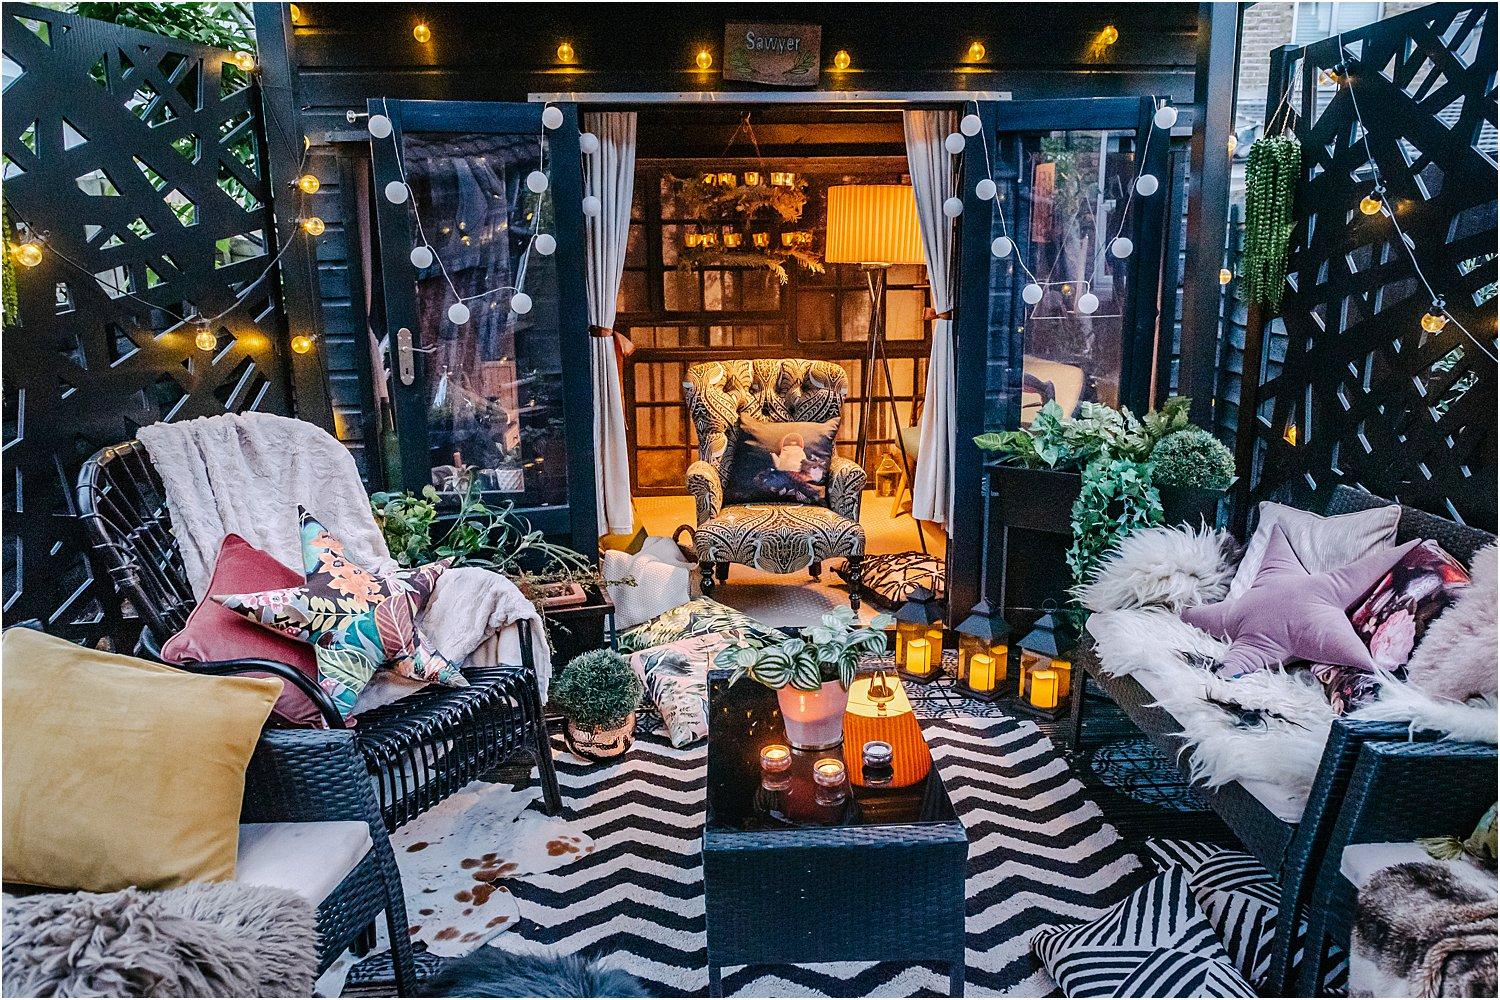 3-easy-ways-to-enjoy-your-garden-area-screen-with-envy-fy!-cabin